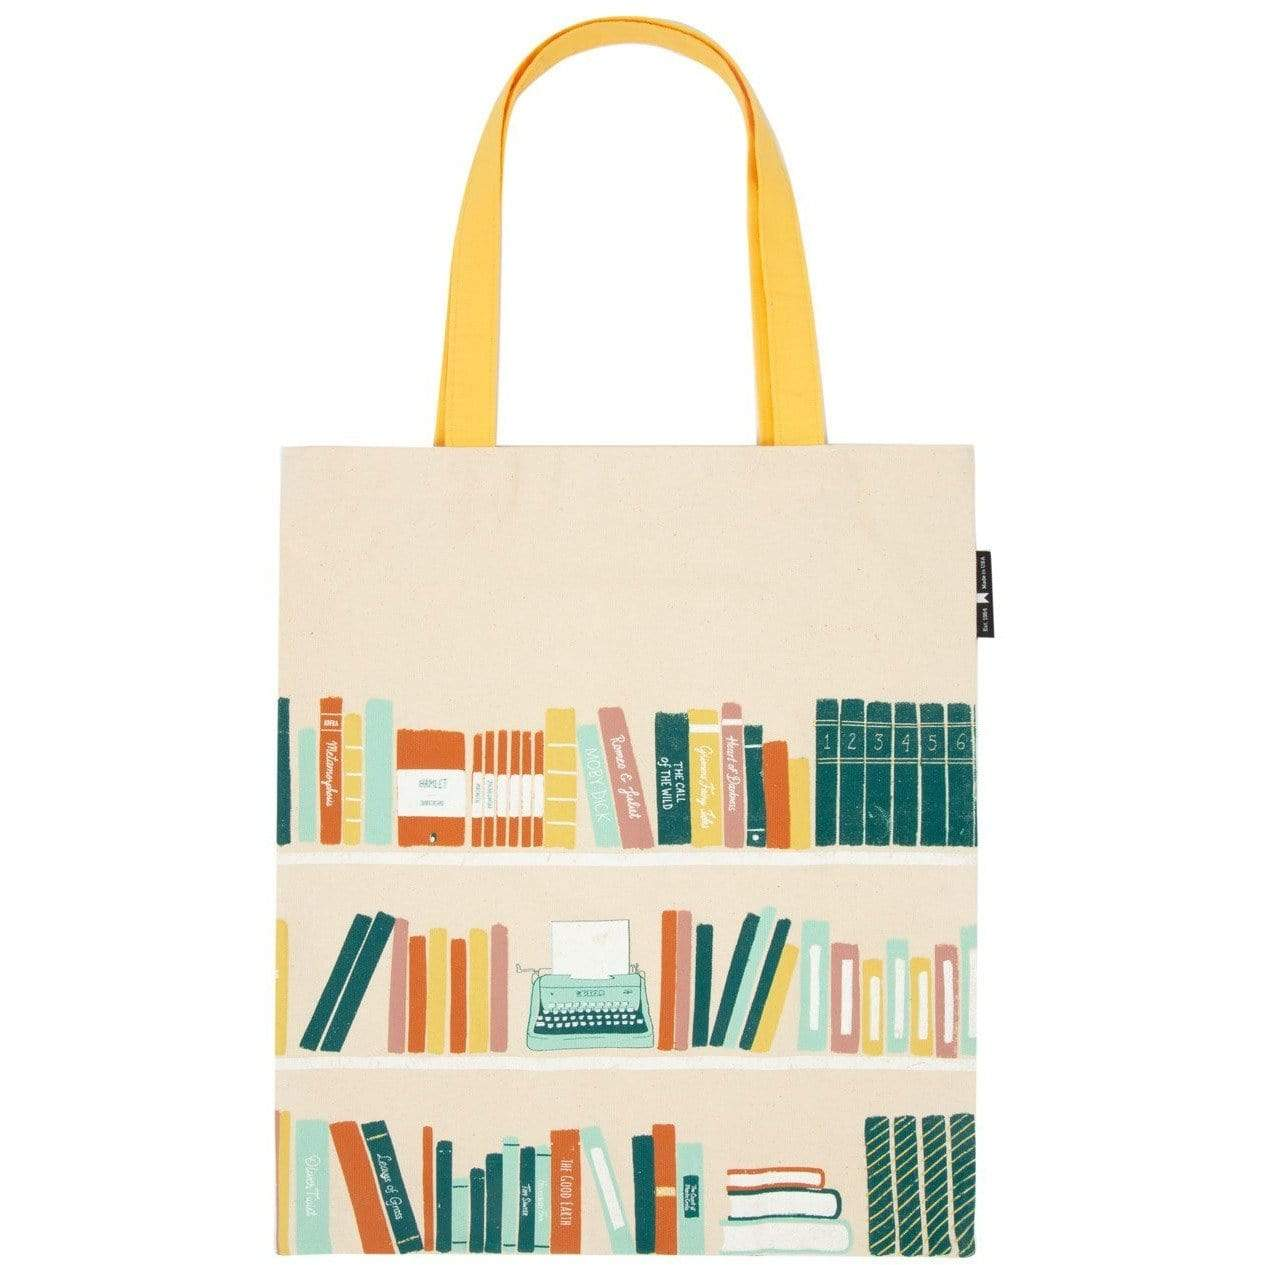 Bookshelf Tote Bag BookGeek